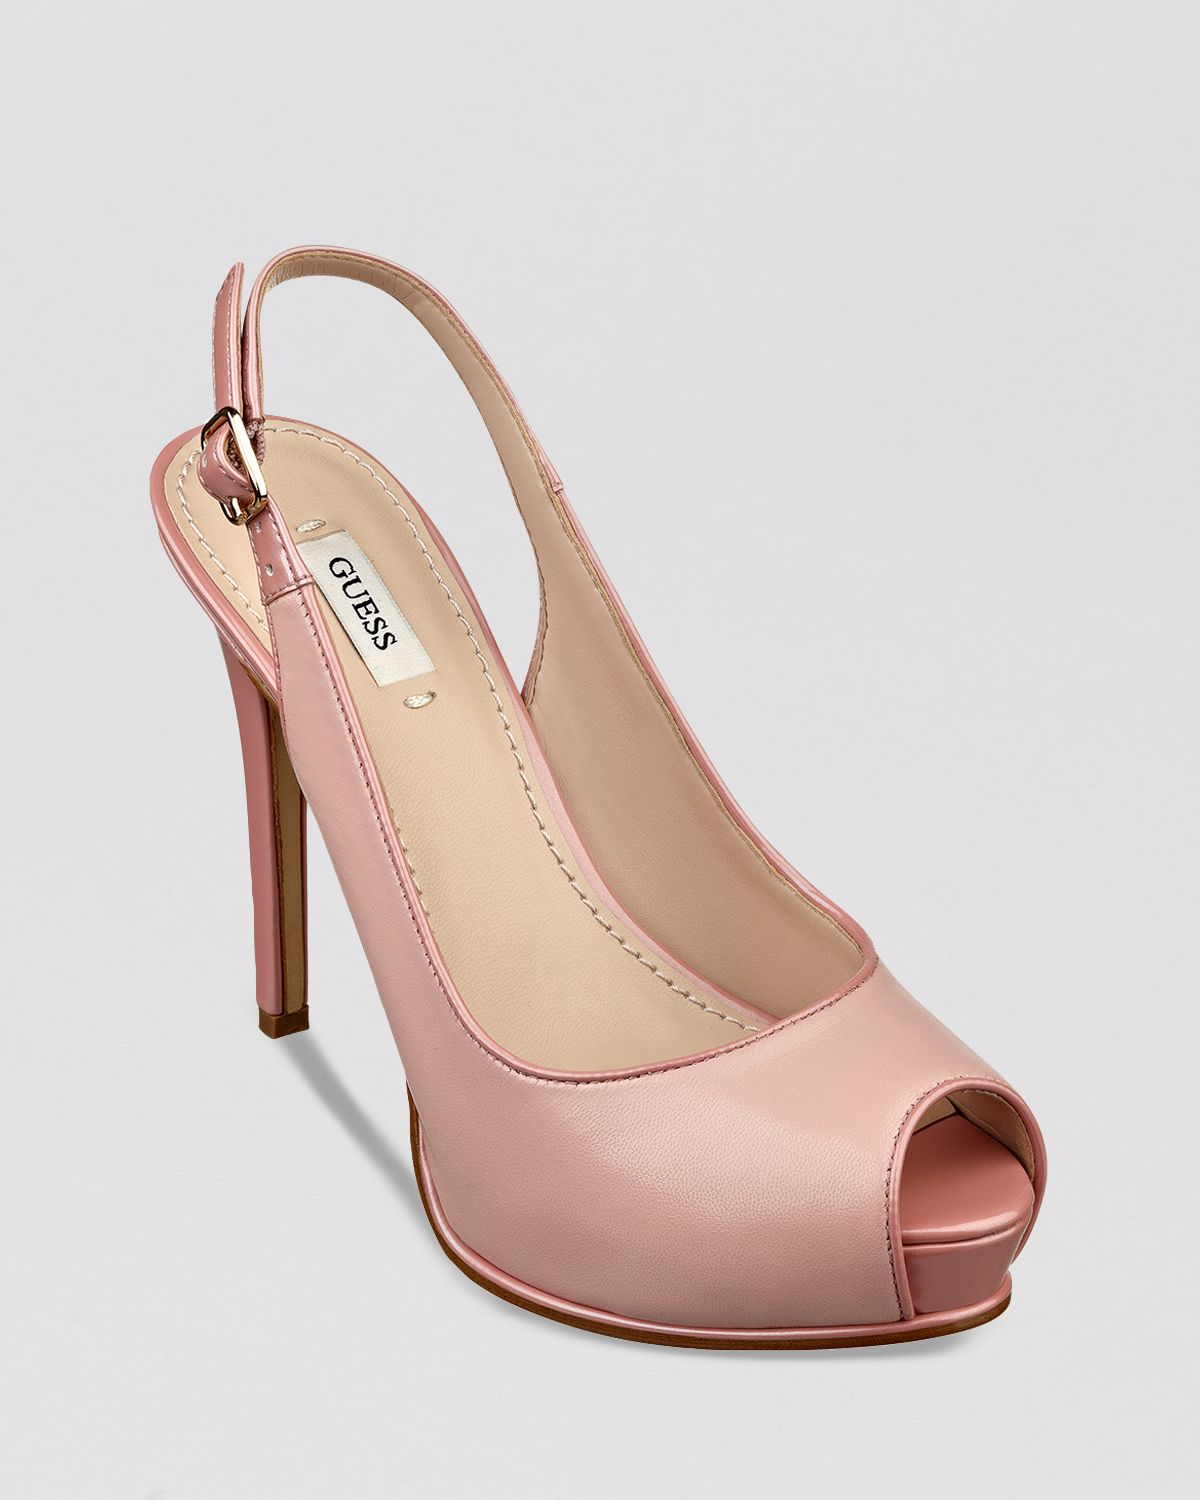 Guess Peep Toe Platform Slingback Pumps Huela High Heel In